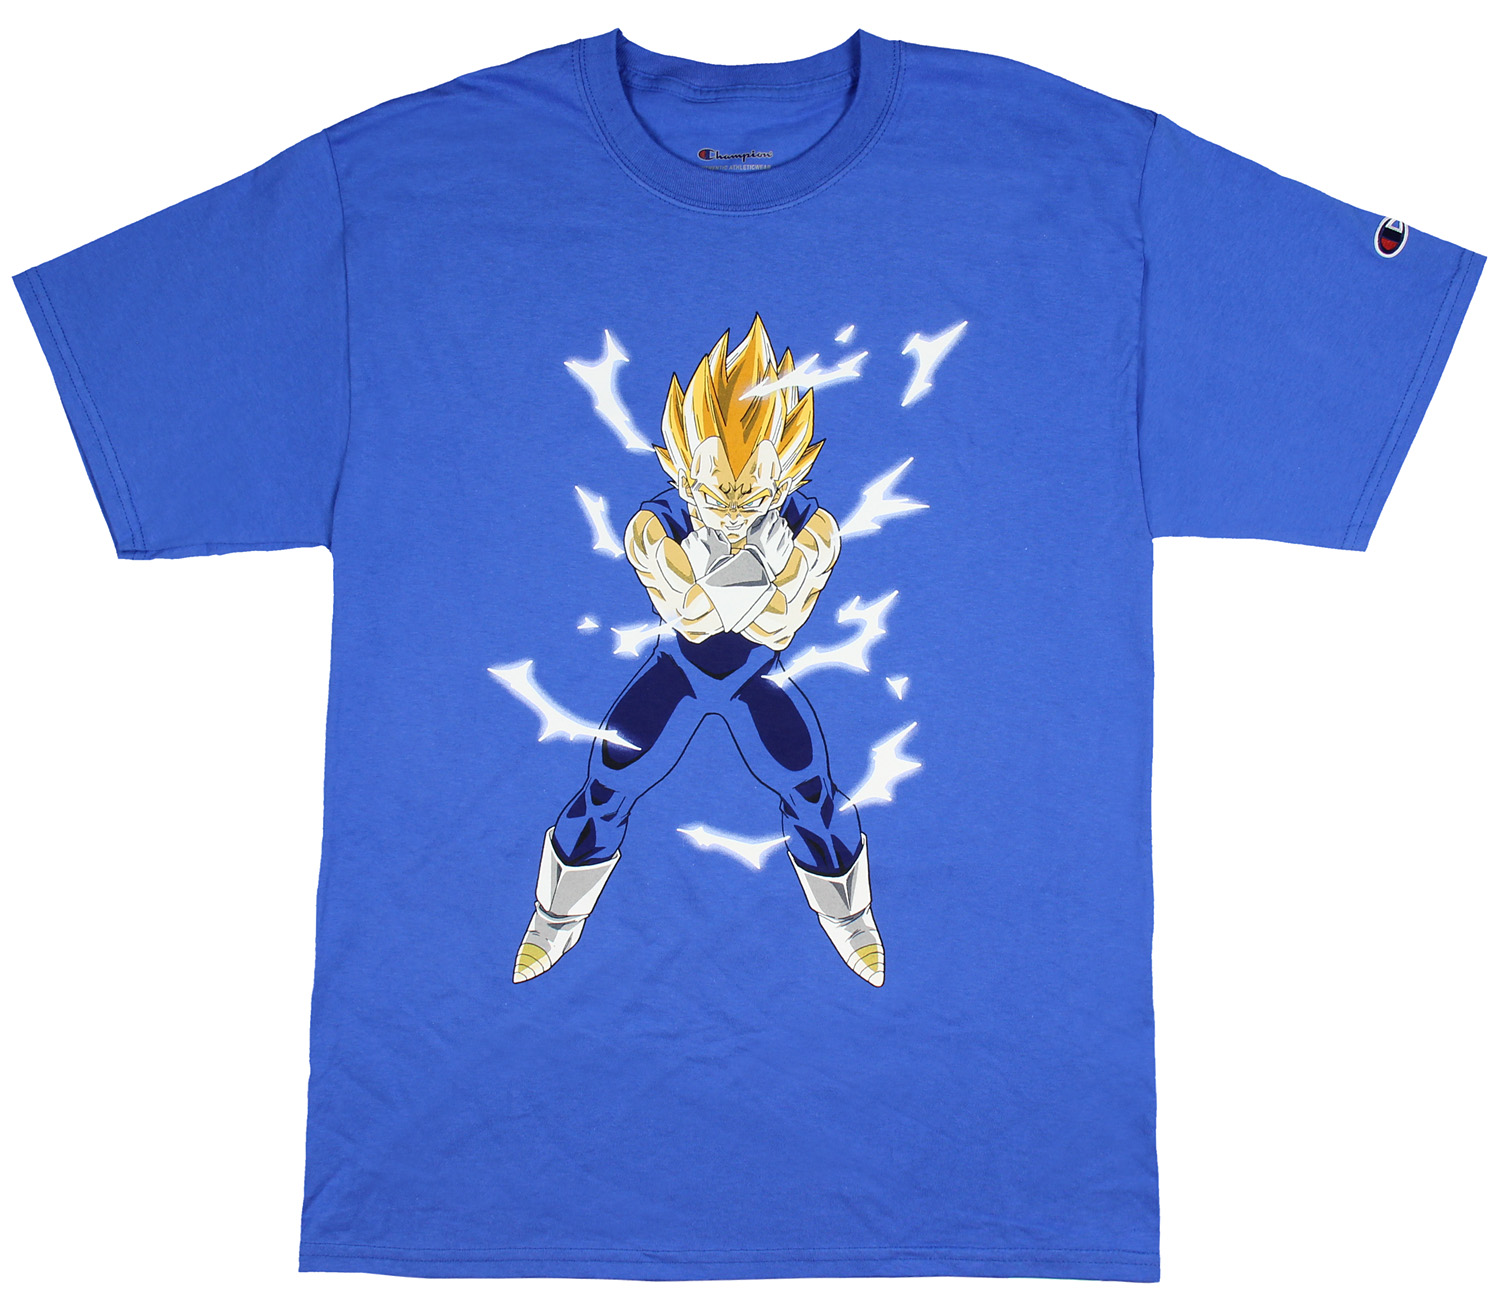 2de4dfa543d Dragon Ball Z Shirt Super Saiyan Goku Men s Champion T-Shirt (Medium)